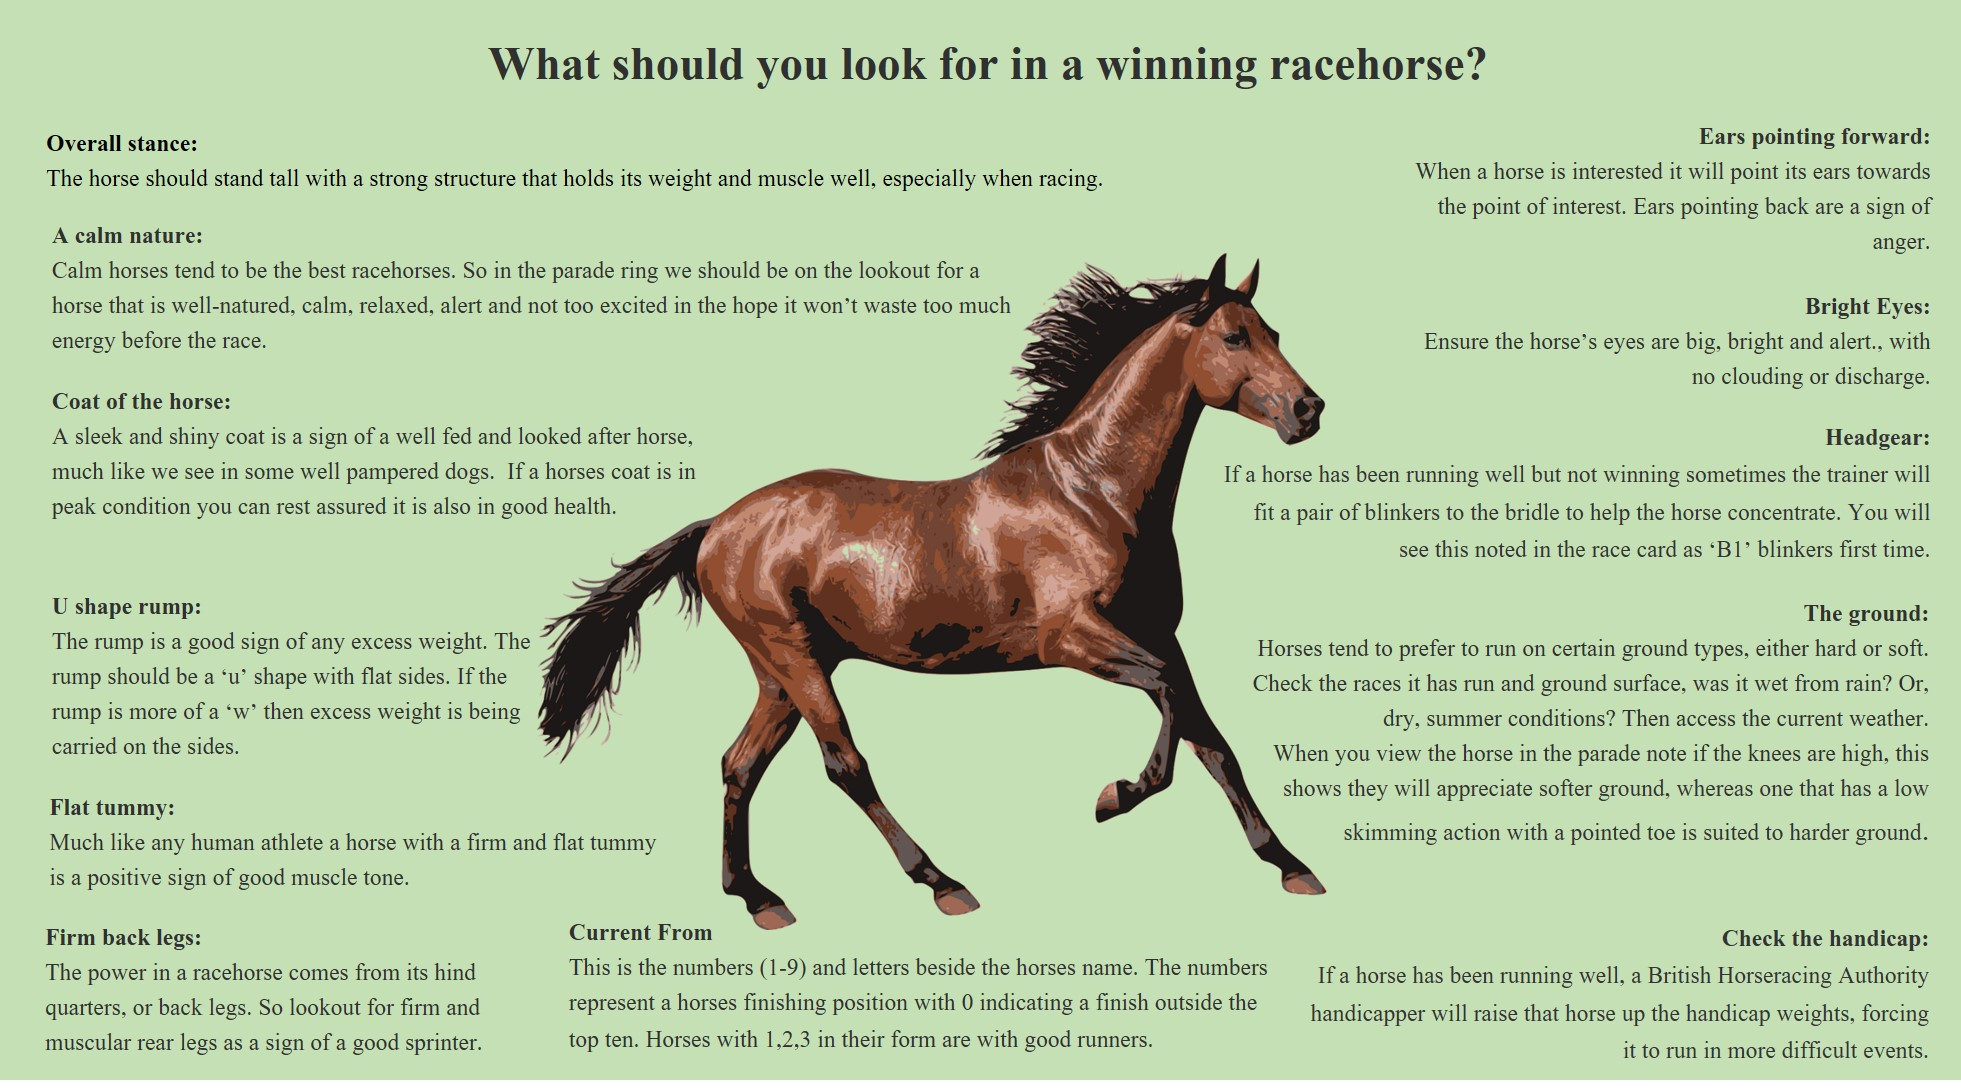 What to look for in a winning racehorse